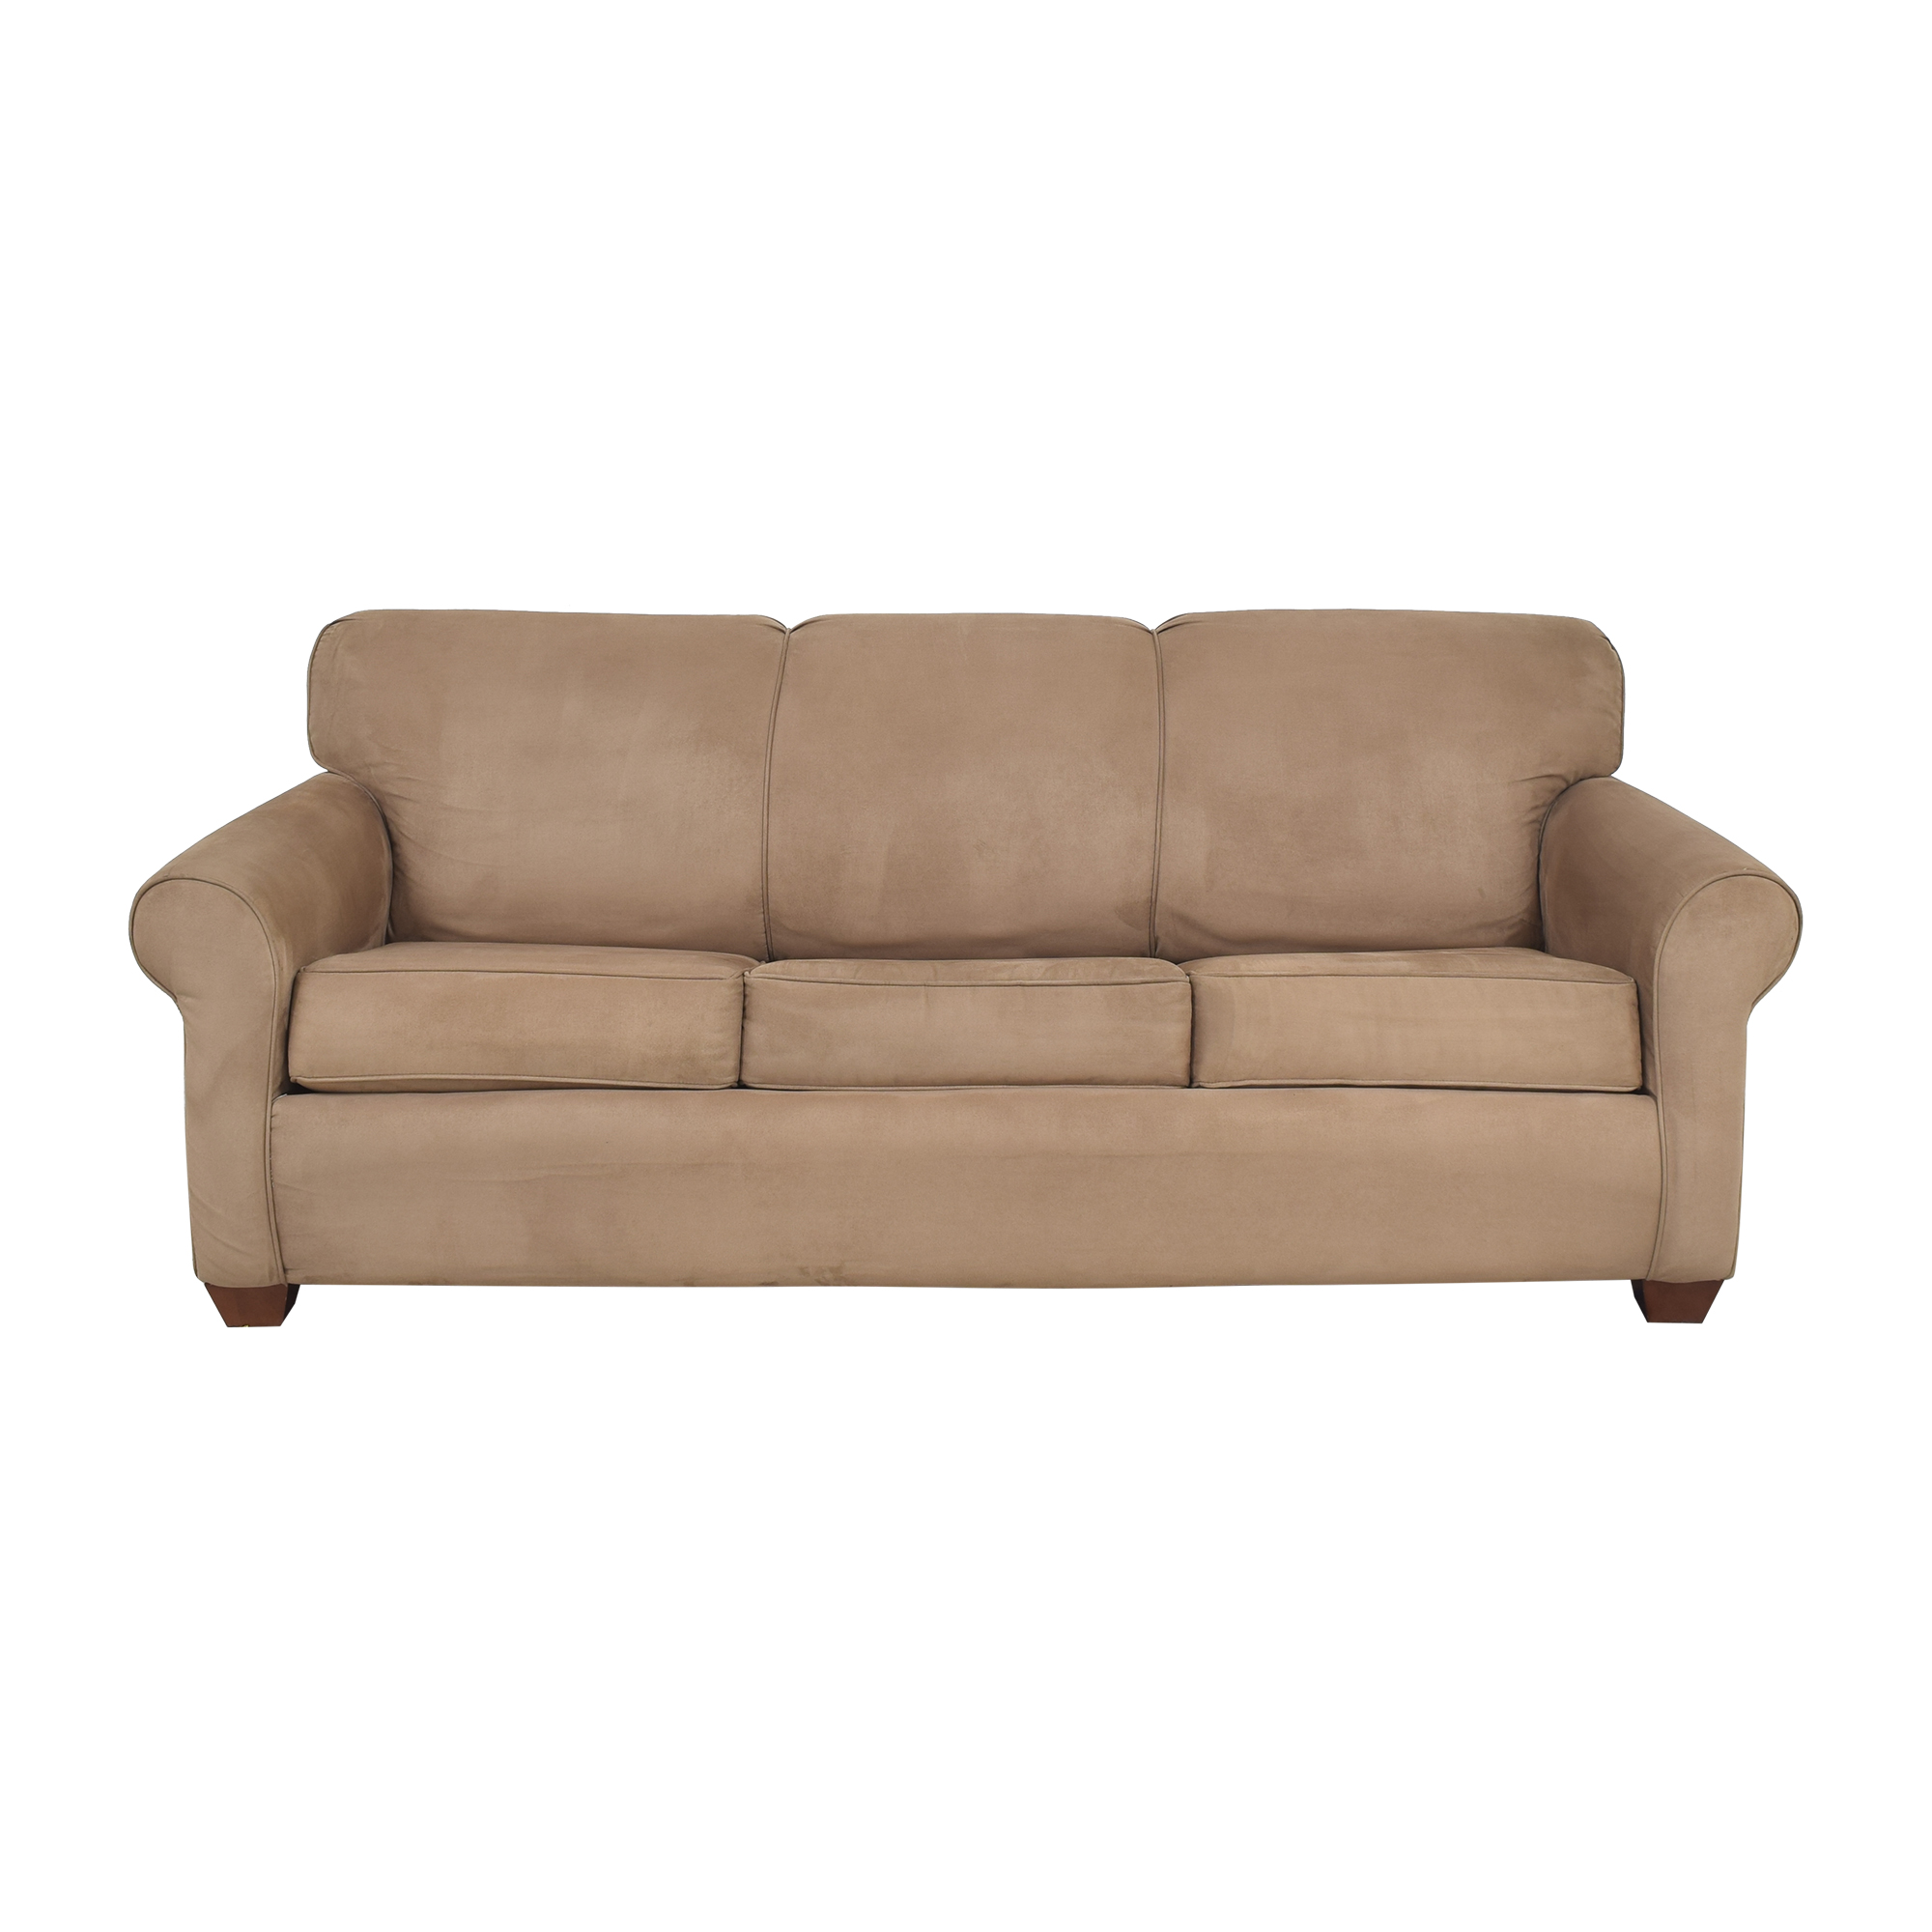 Sealy Sealy Queen Sofa Bed Brown